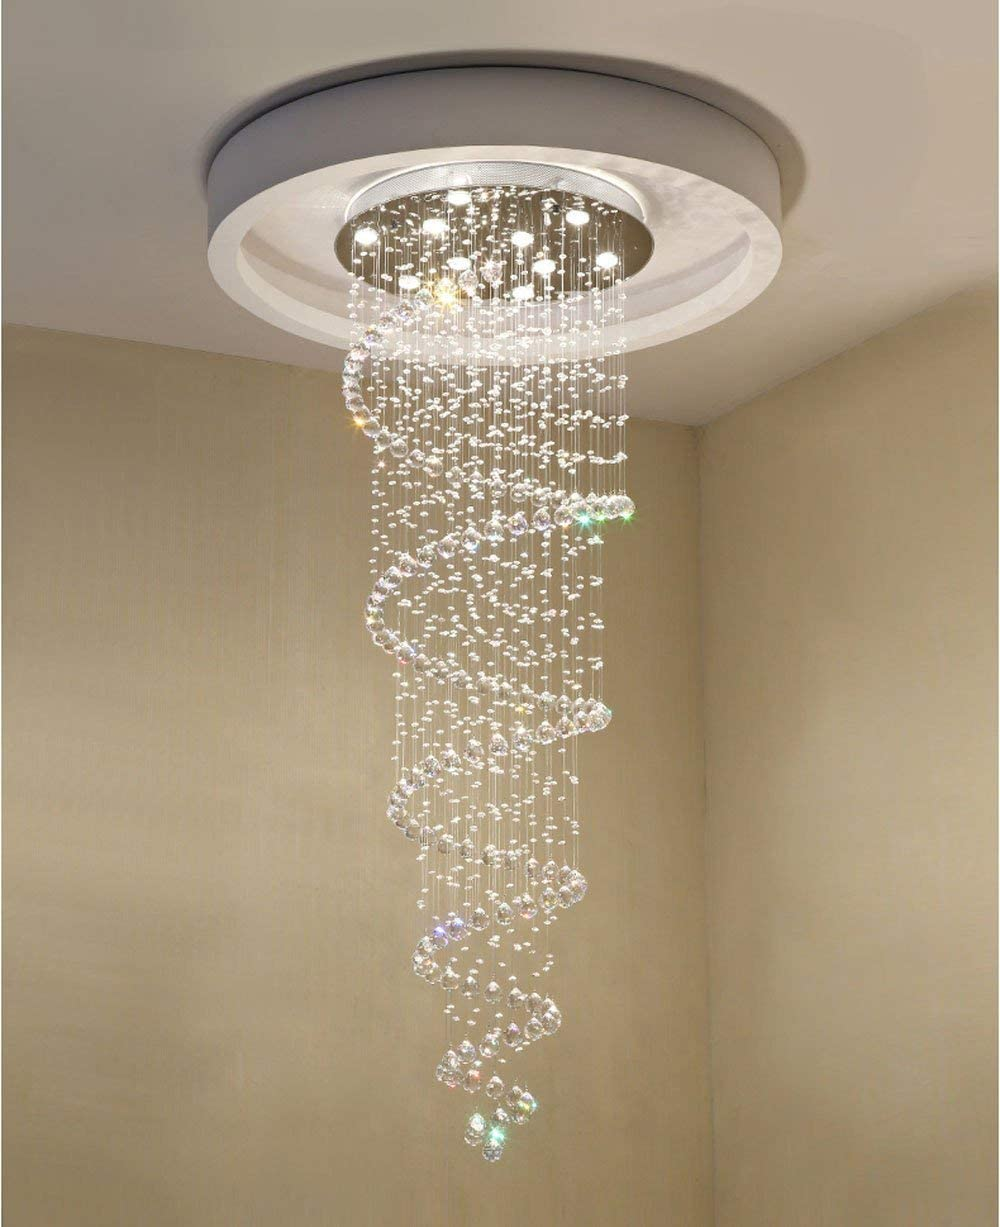 Crystal Chandeliers LED 3 Brightness K9 Crystal Ceiling Lights Chandelier Stairs Lobby Country House Showroom Living Room with LED Bulbs and Remote Control D47 x H197